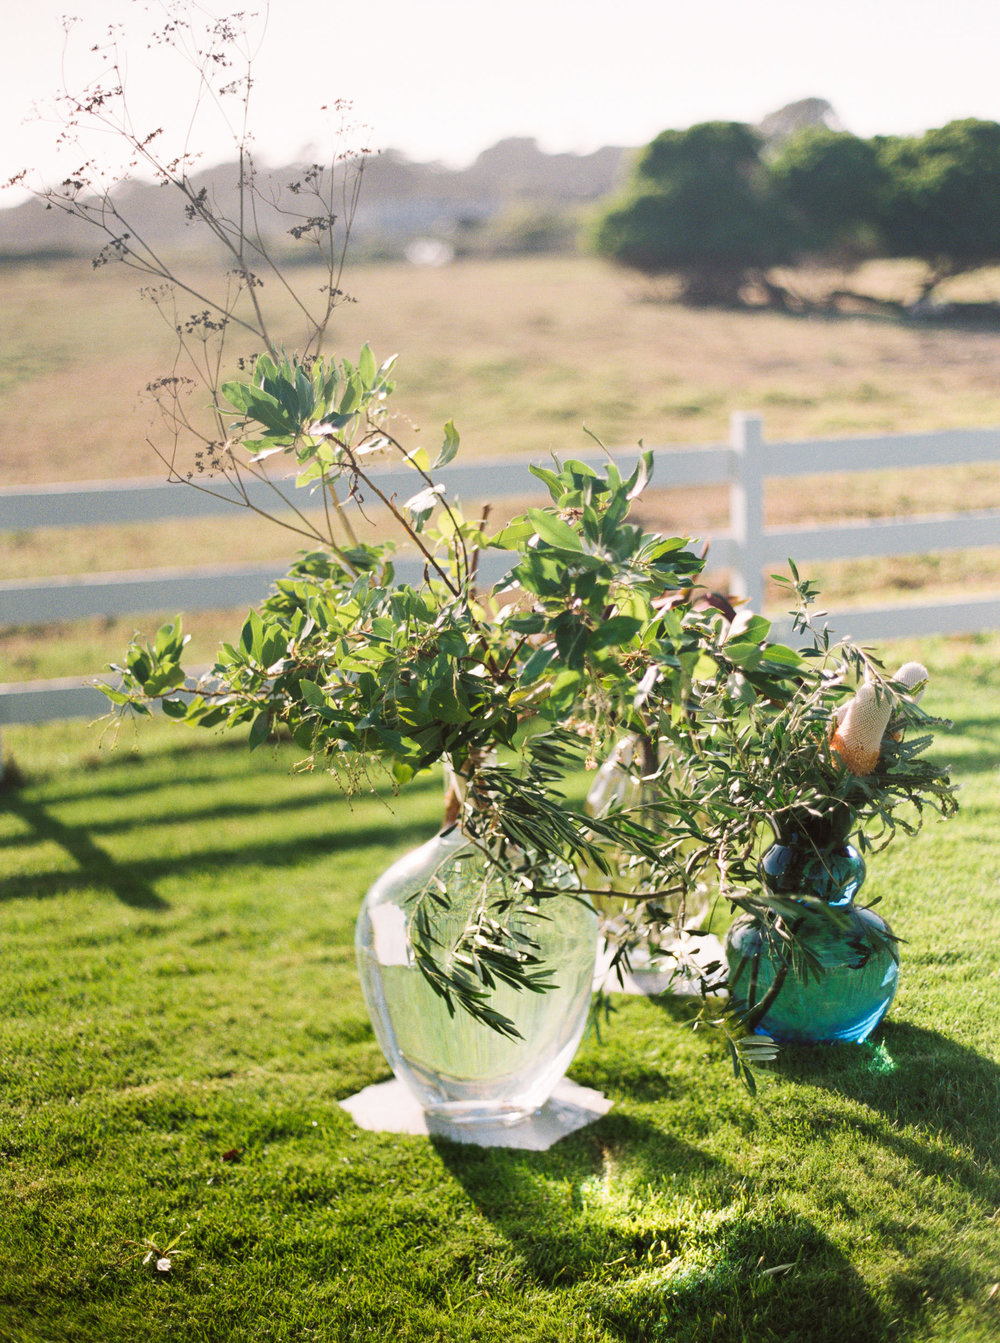 038carmel_california_destination_wedding_photography_wedding_videography_mission_ranch.jpg